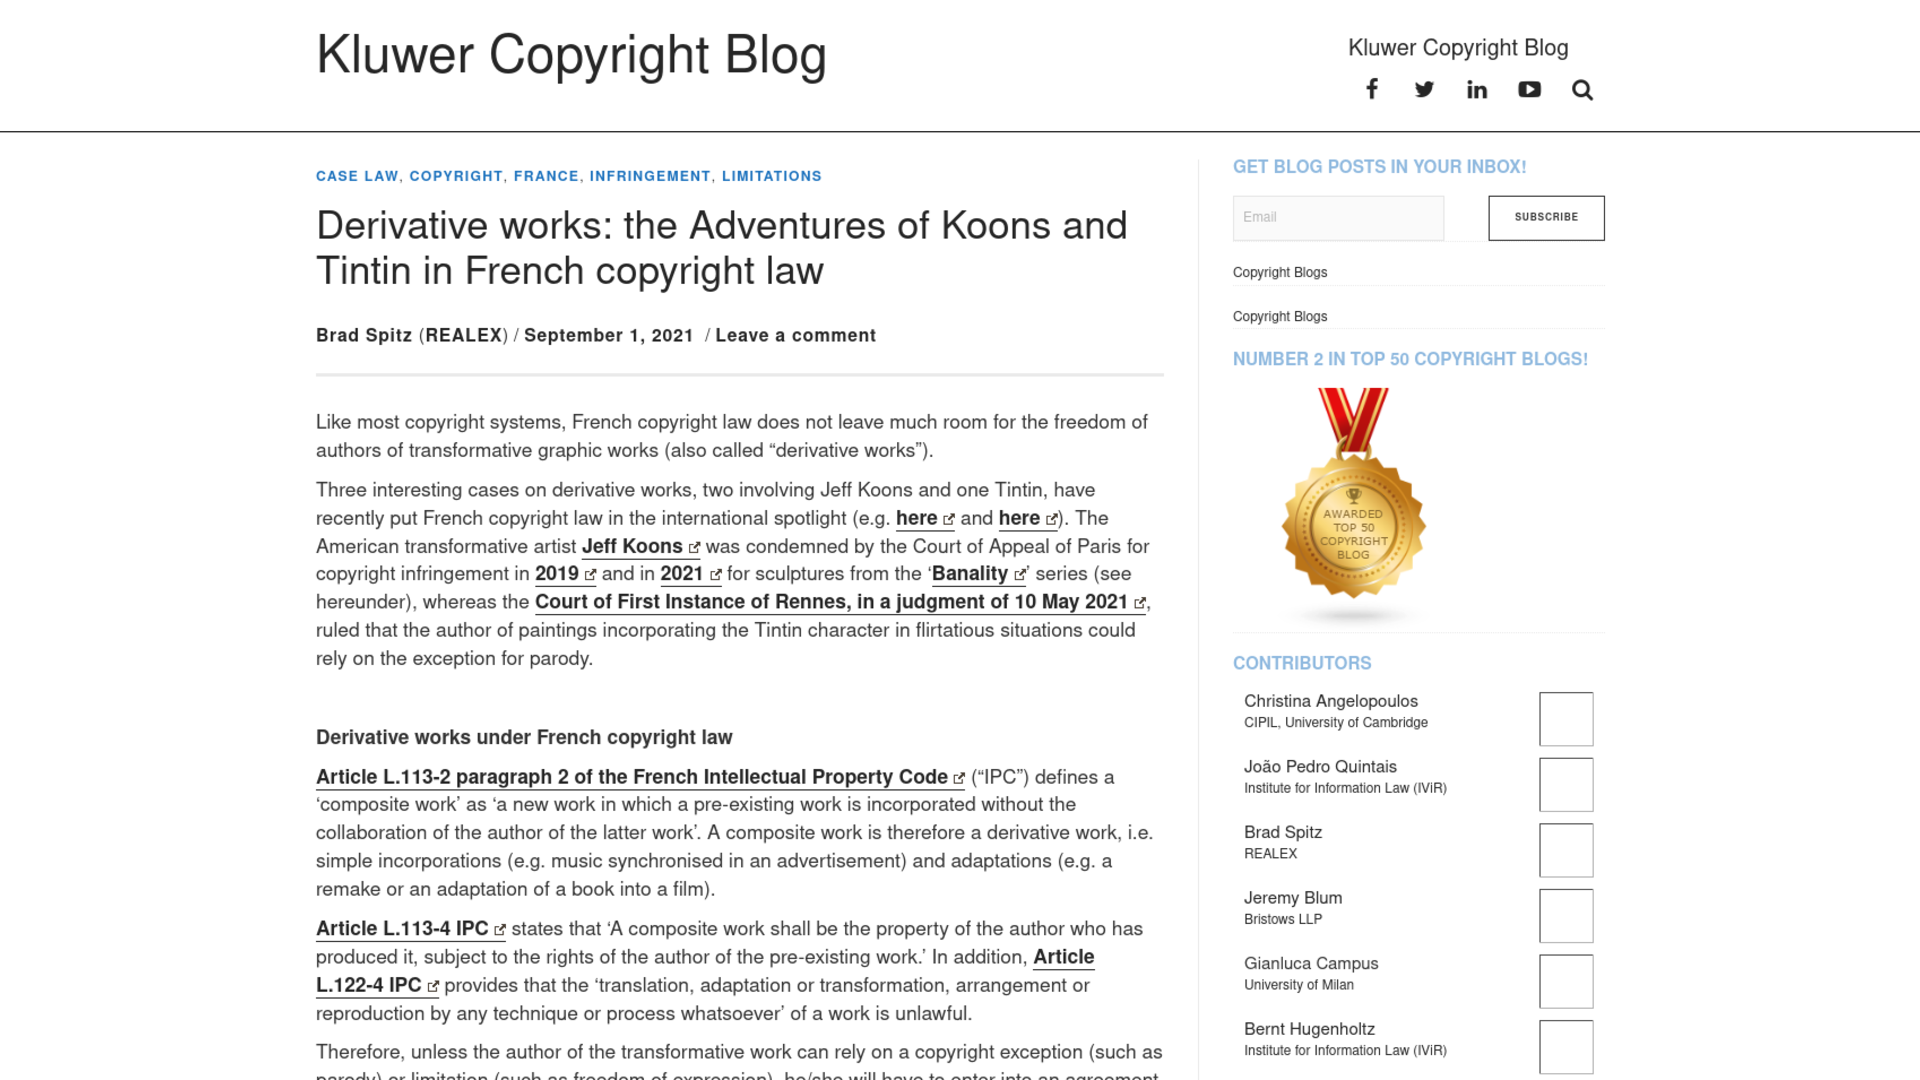 Fairness Rocks News Derivative works: the Adventures of Koons and Tintin in French copyright law